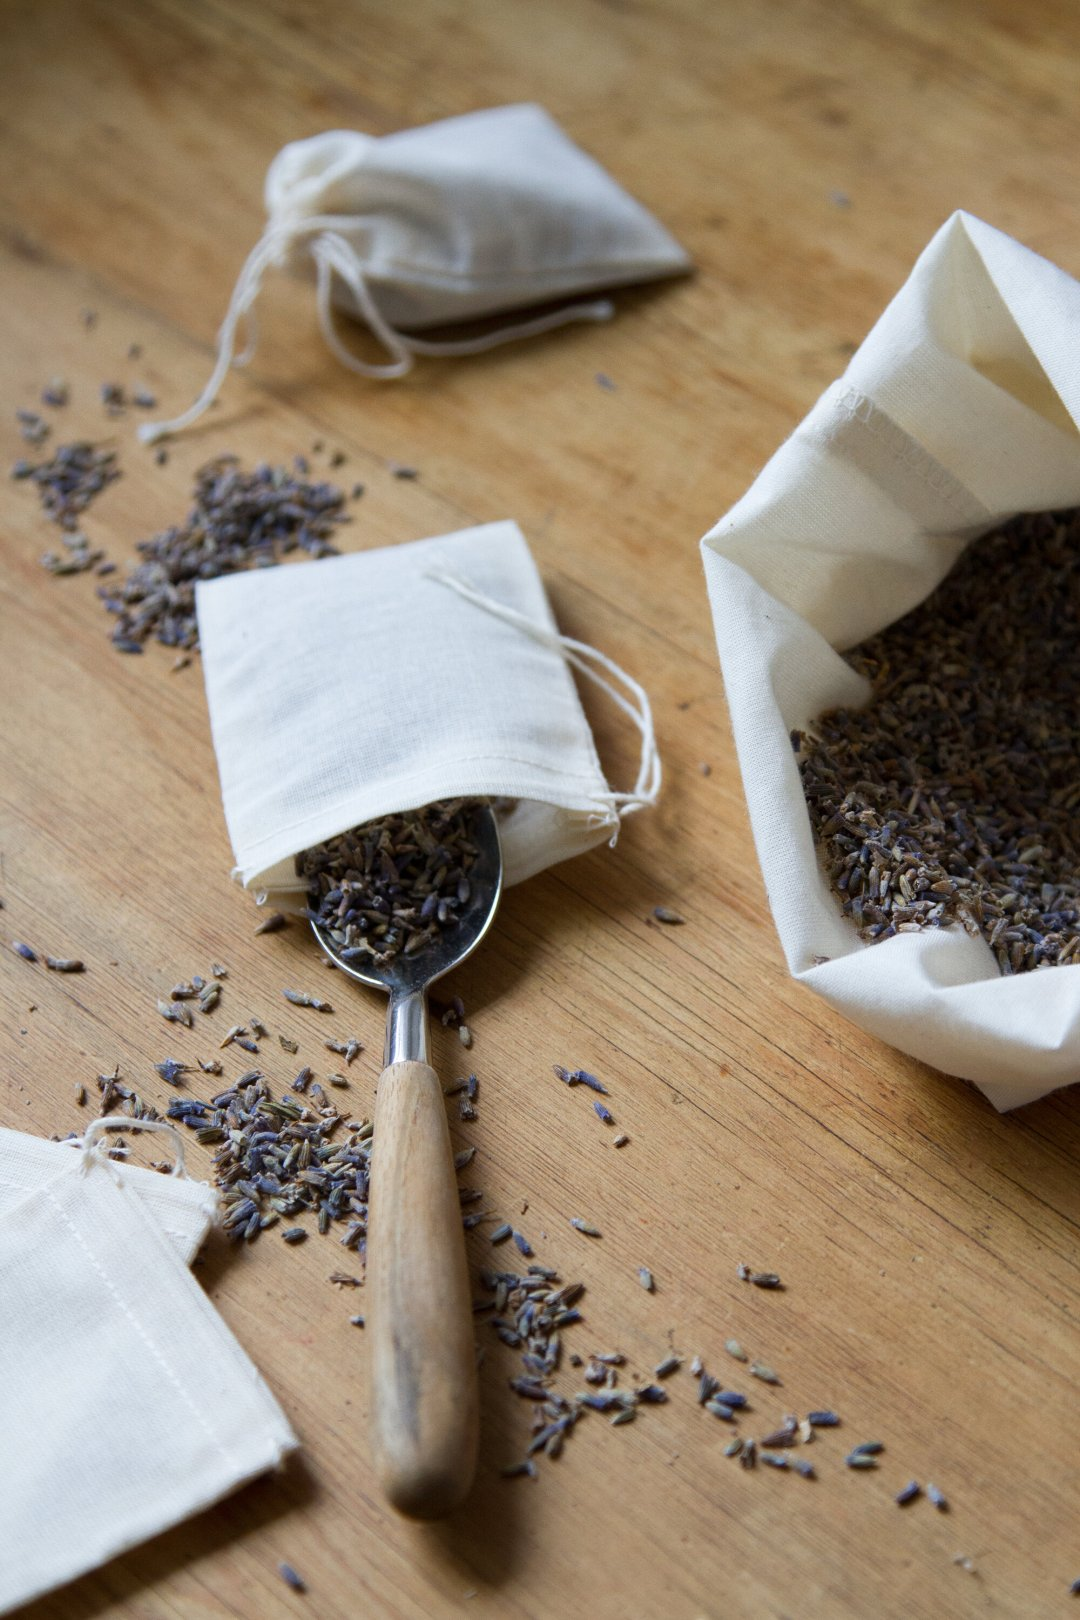 spring cleaning, two ways | reading my tea leaves